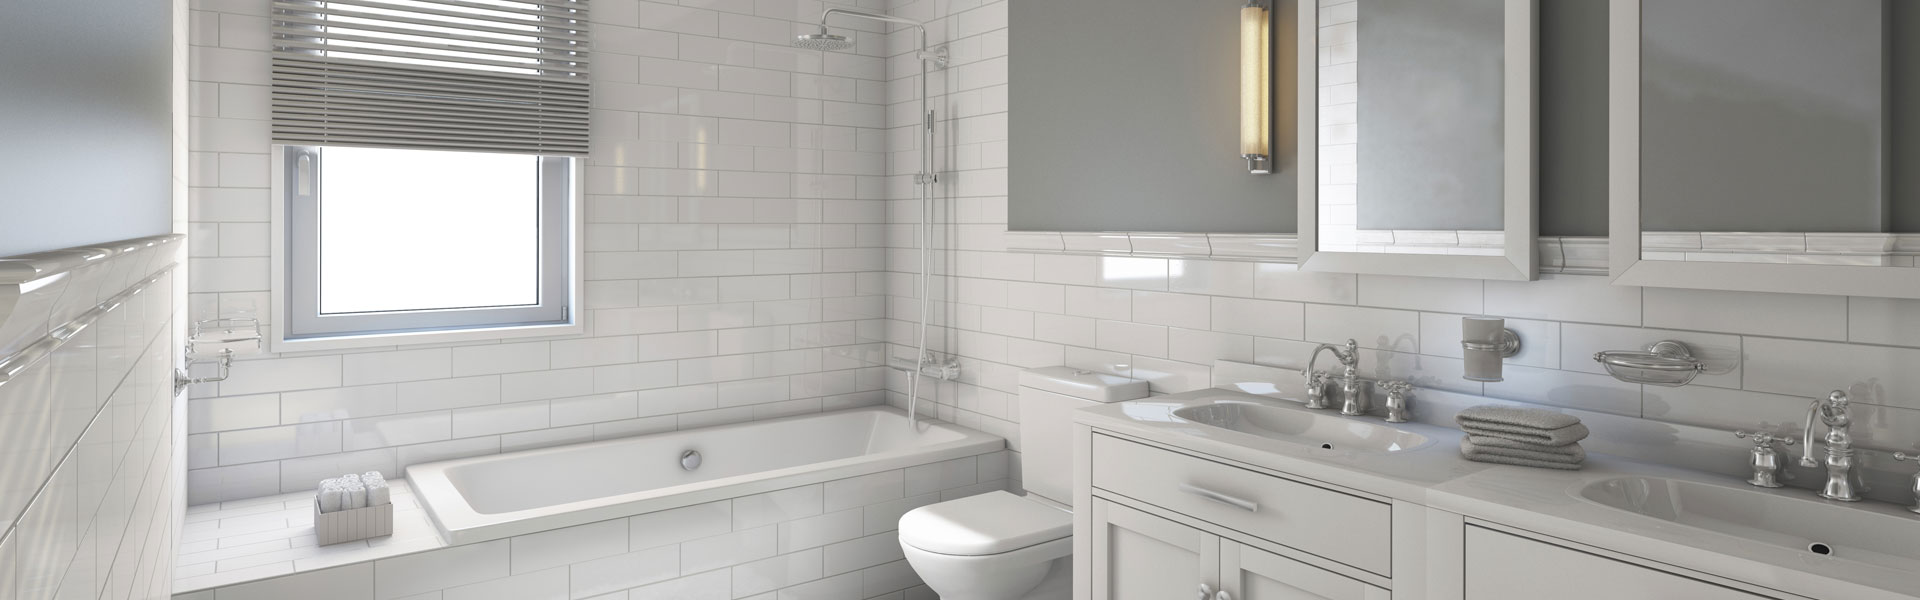 Bathroom Remodeling Loan Bathroom Remodel Financing